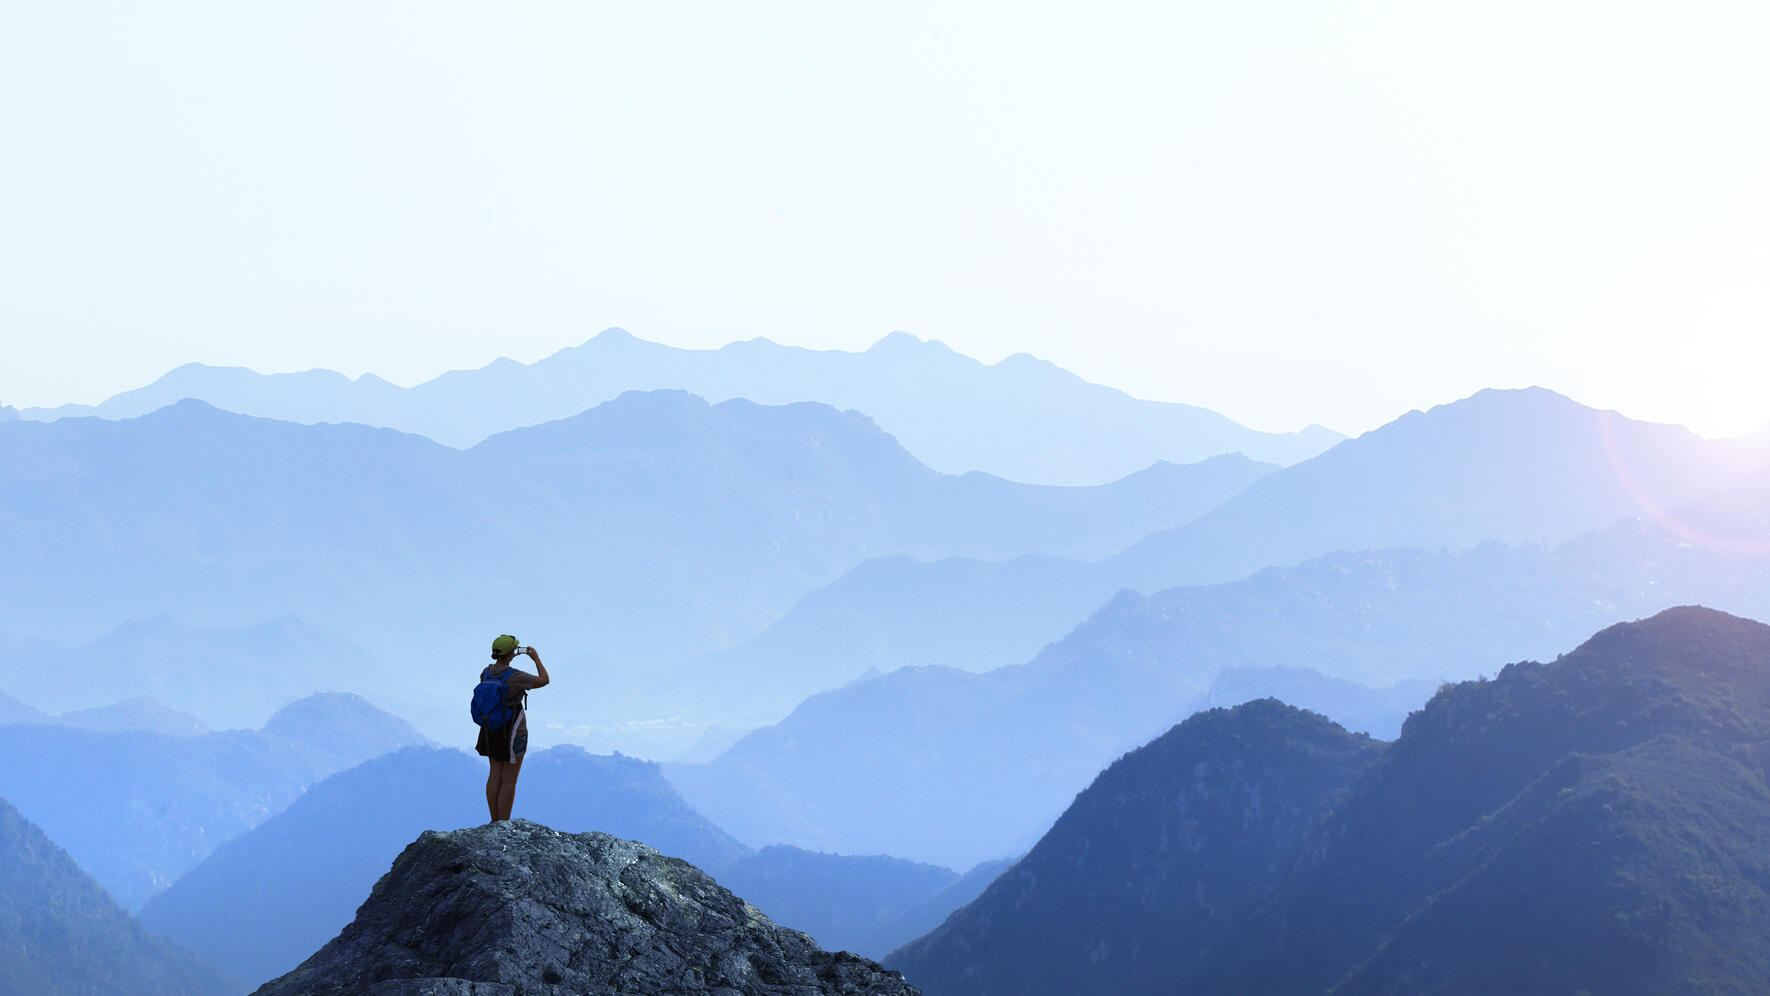 A female hiker stands on top of a rocky promontory as she uses her mobile phone to take a picture of the setting sun on the distant horizon. A series of mountain ridges seem to disappear into the distance as the haze obscures the details creating a graphic outline of the various layers of ridge lines.